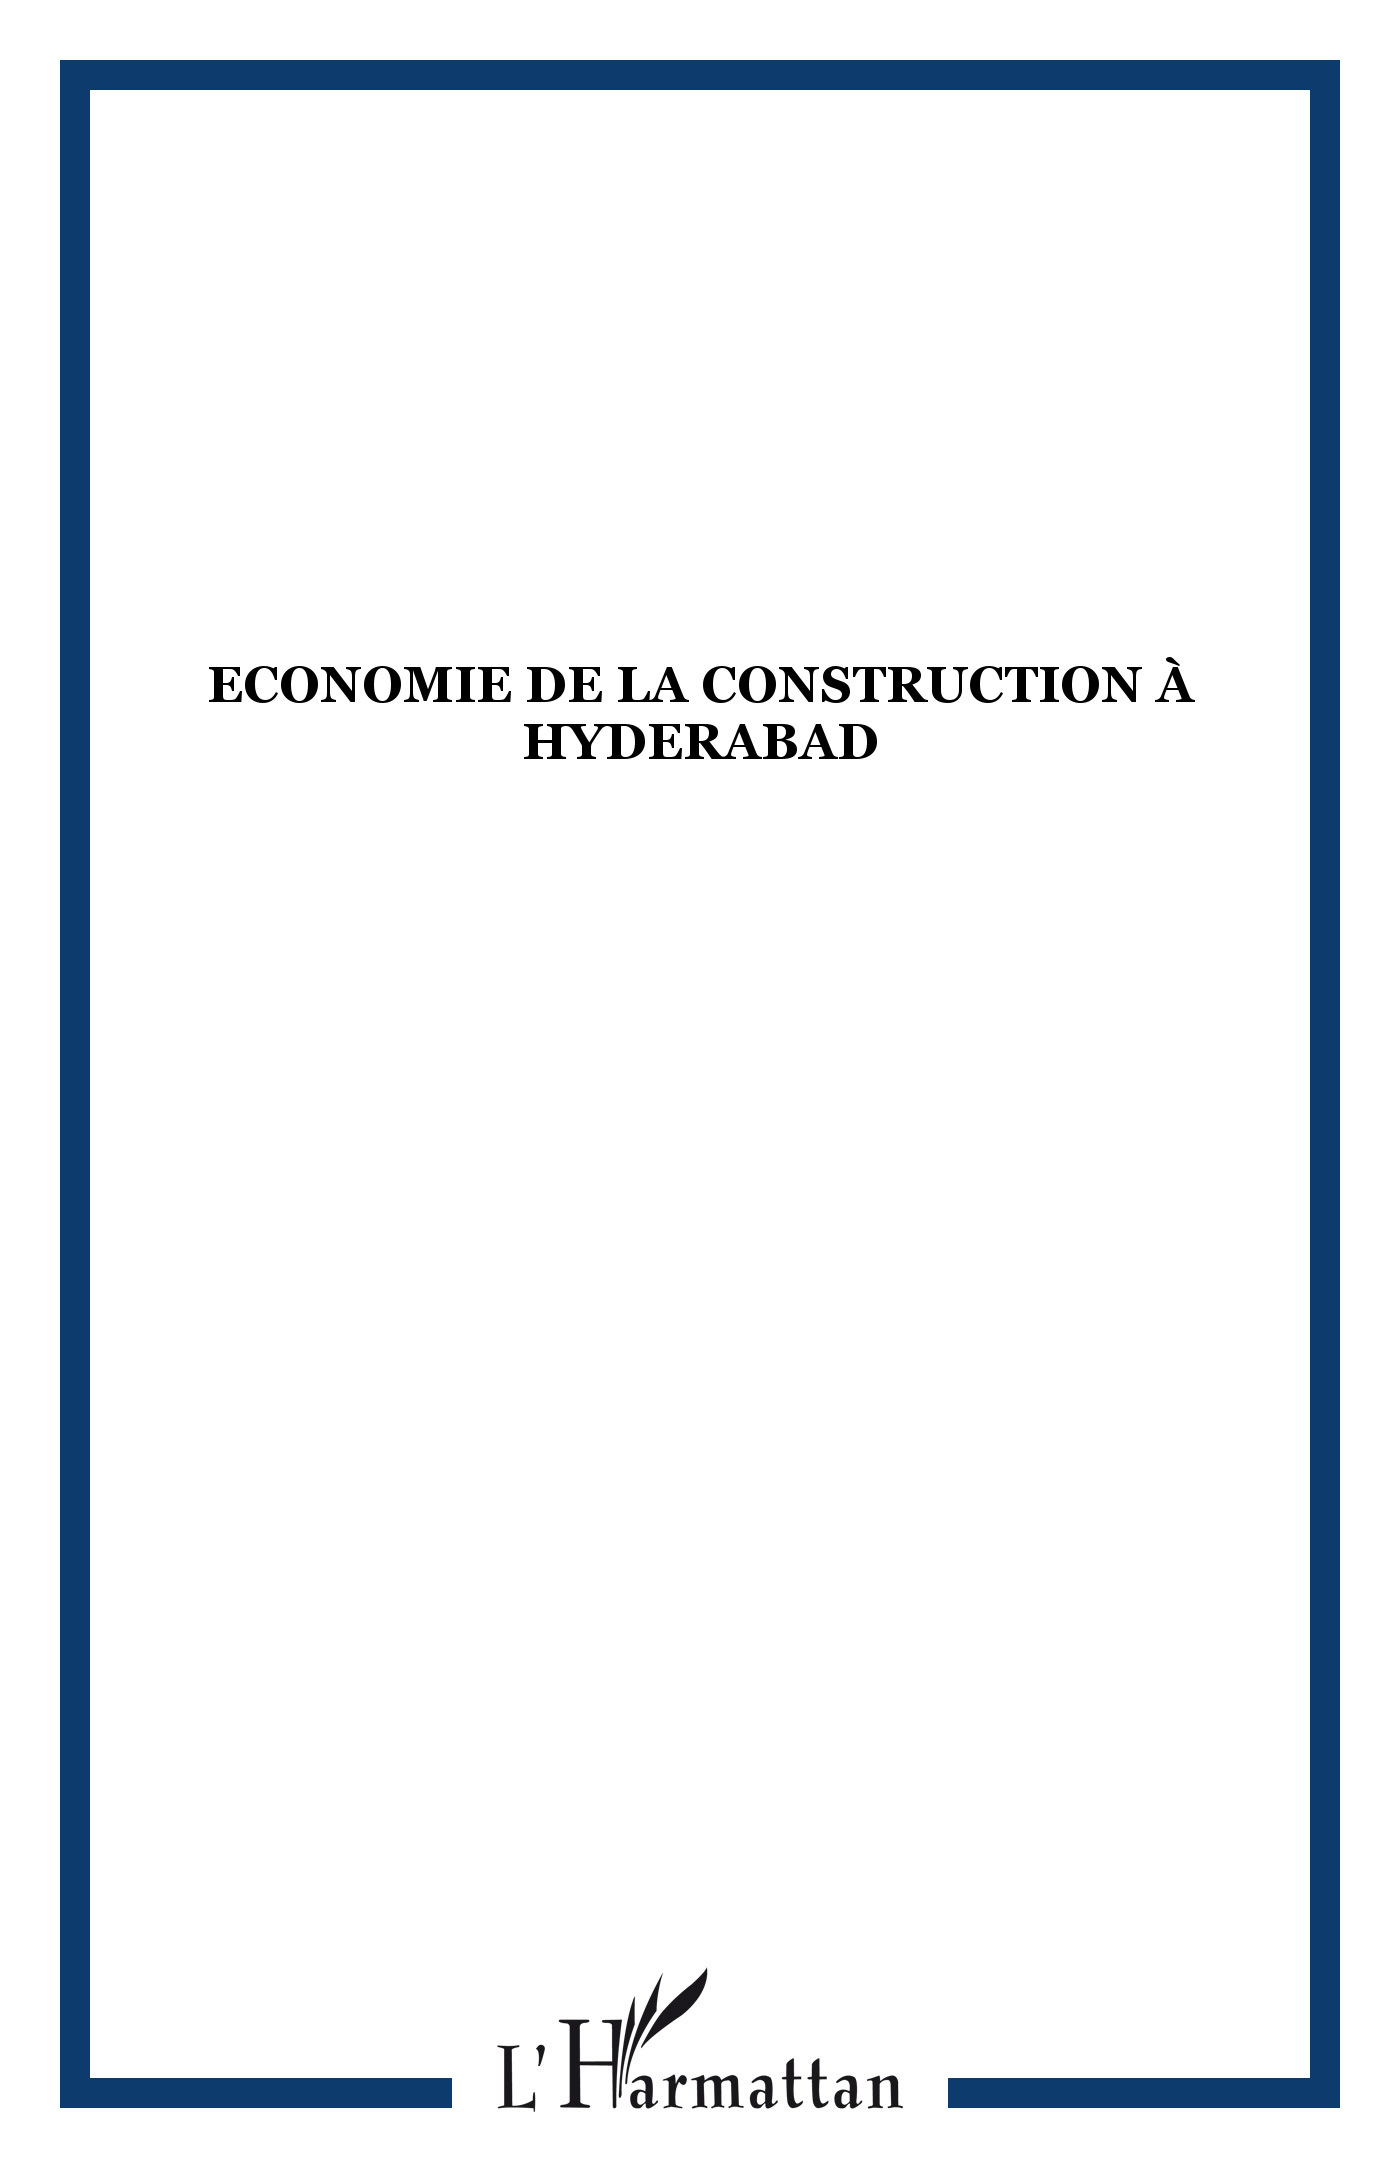 ECONOMIE DE LA CONSTRUCTION A HYDERABAD